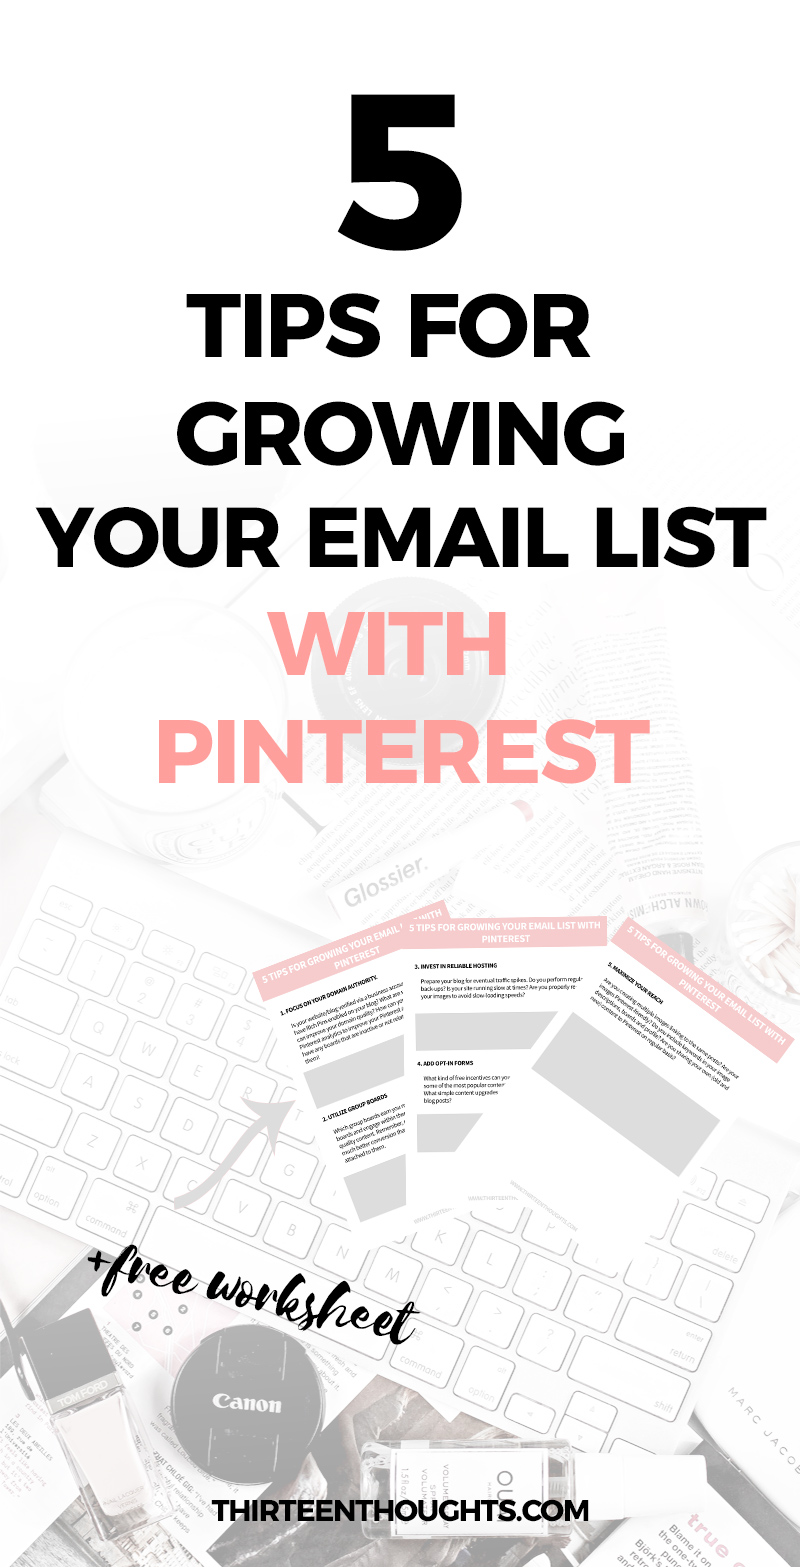 Growing your email list with Pinterest. #pinterestmarketing #blogging #onlinebiz #marketing